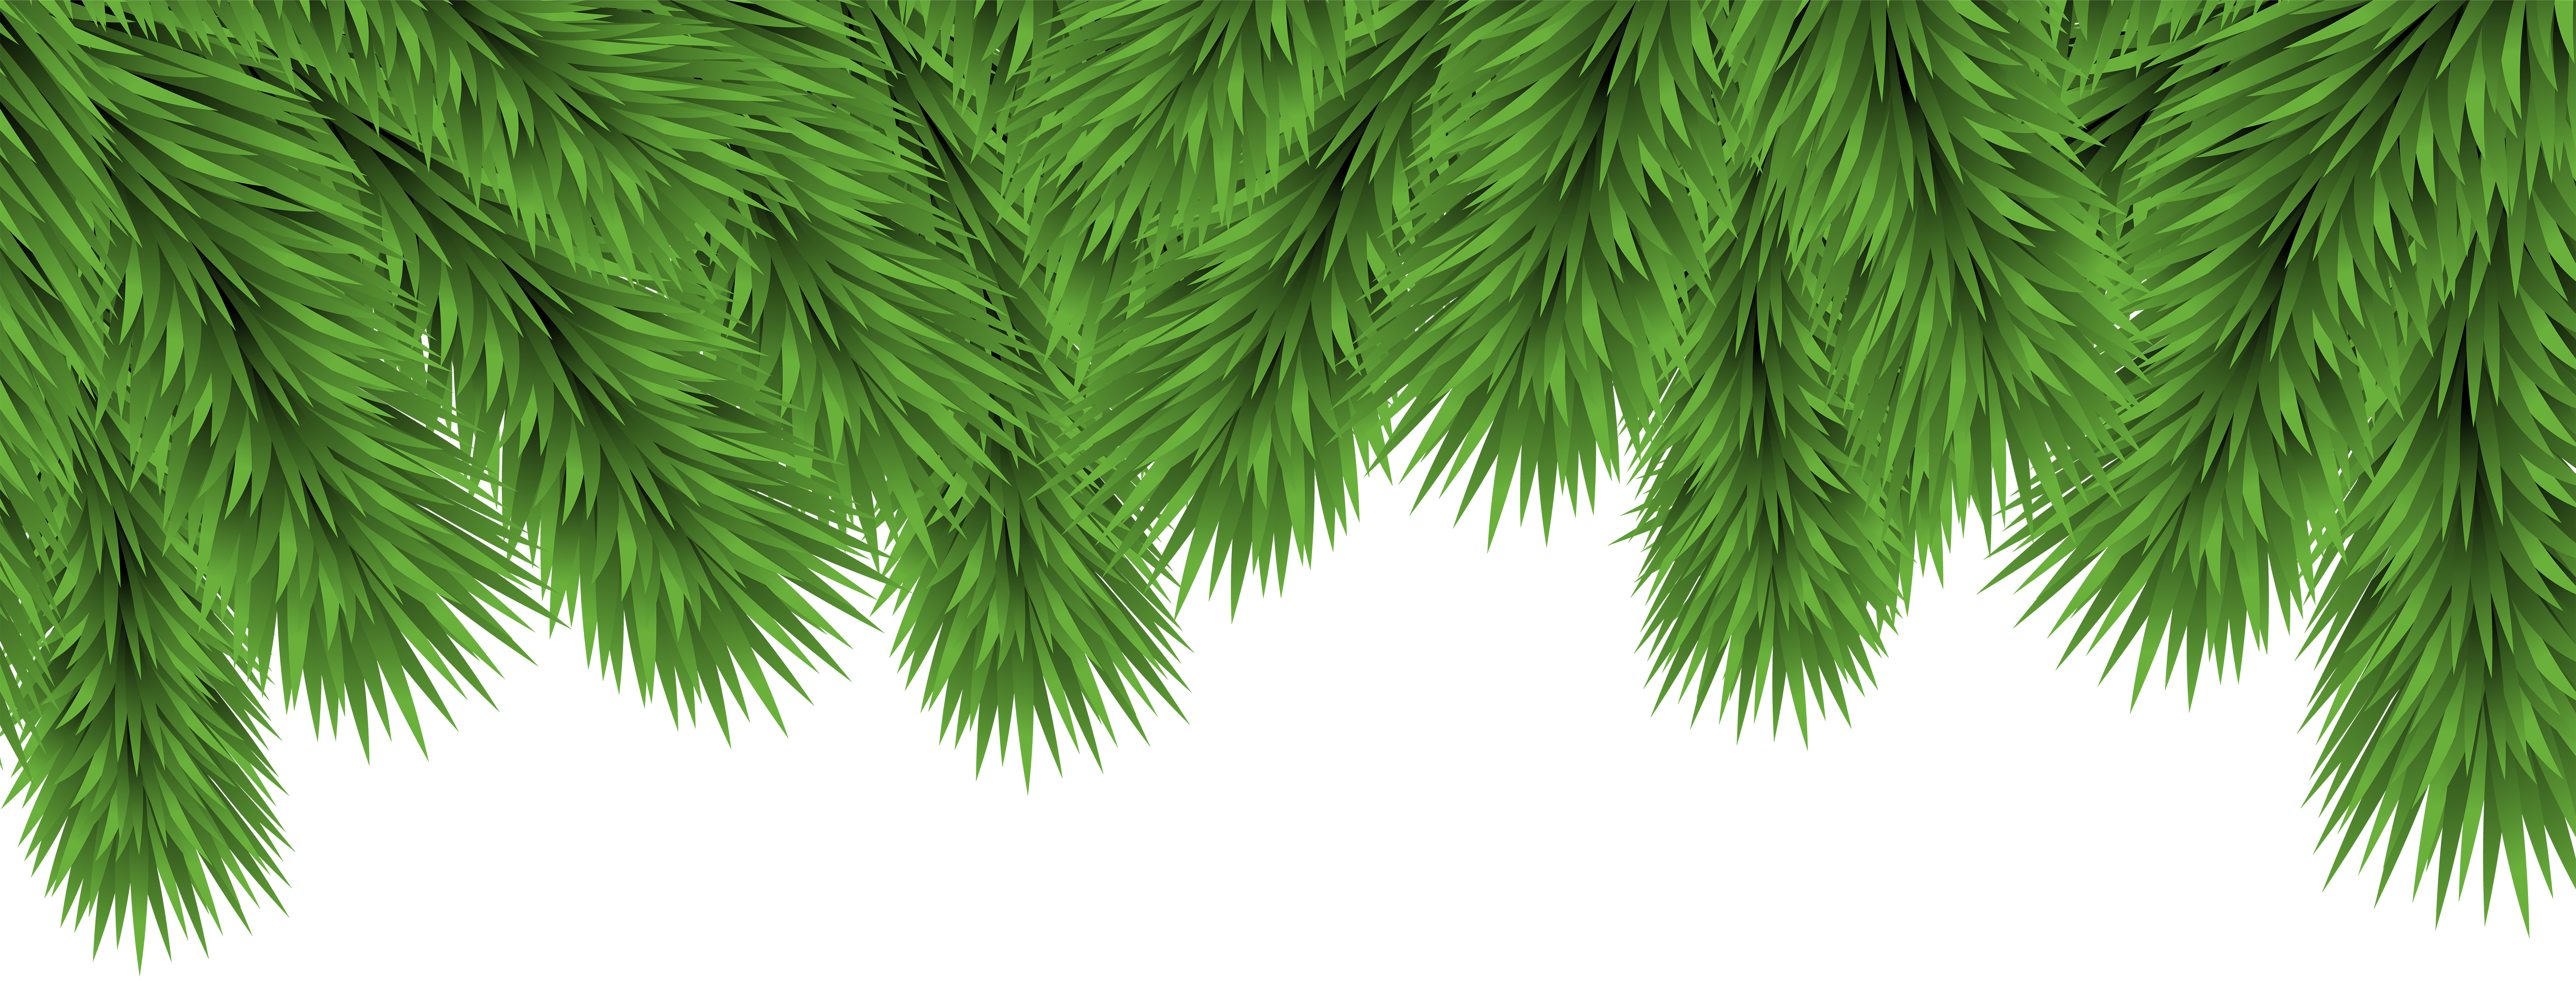 Branch clipart decorative branch. Christmas branches png clip